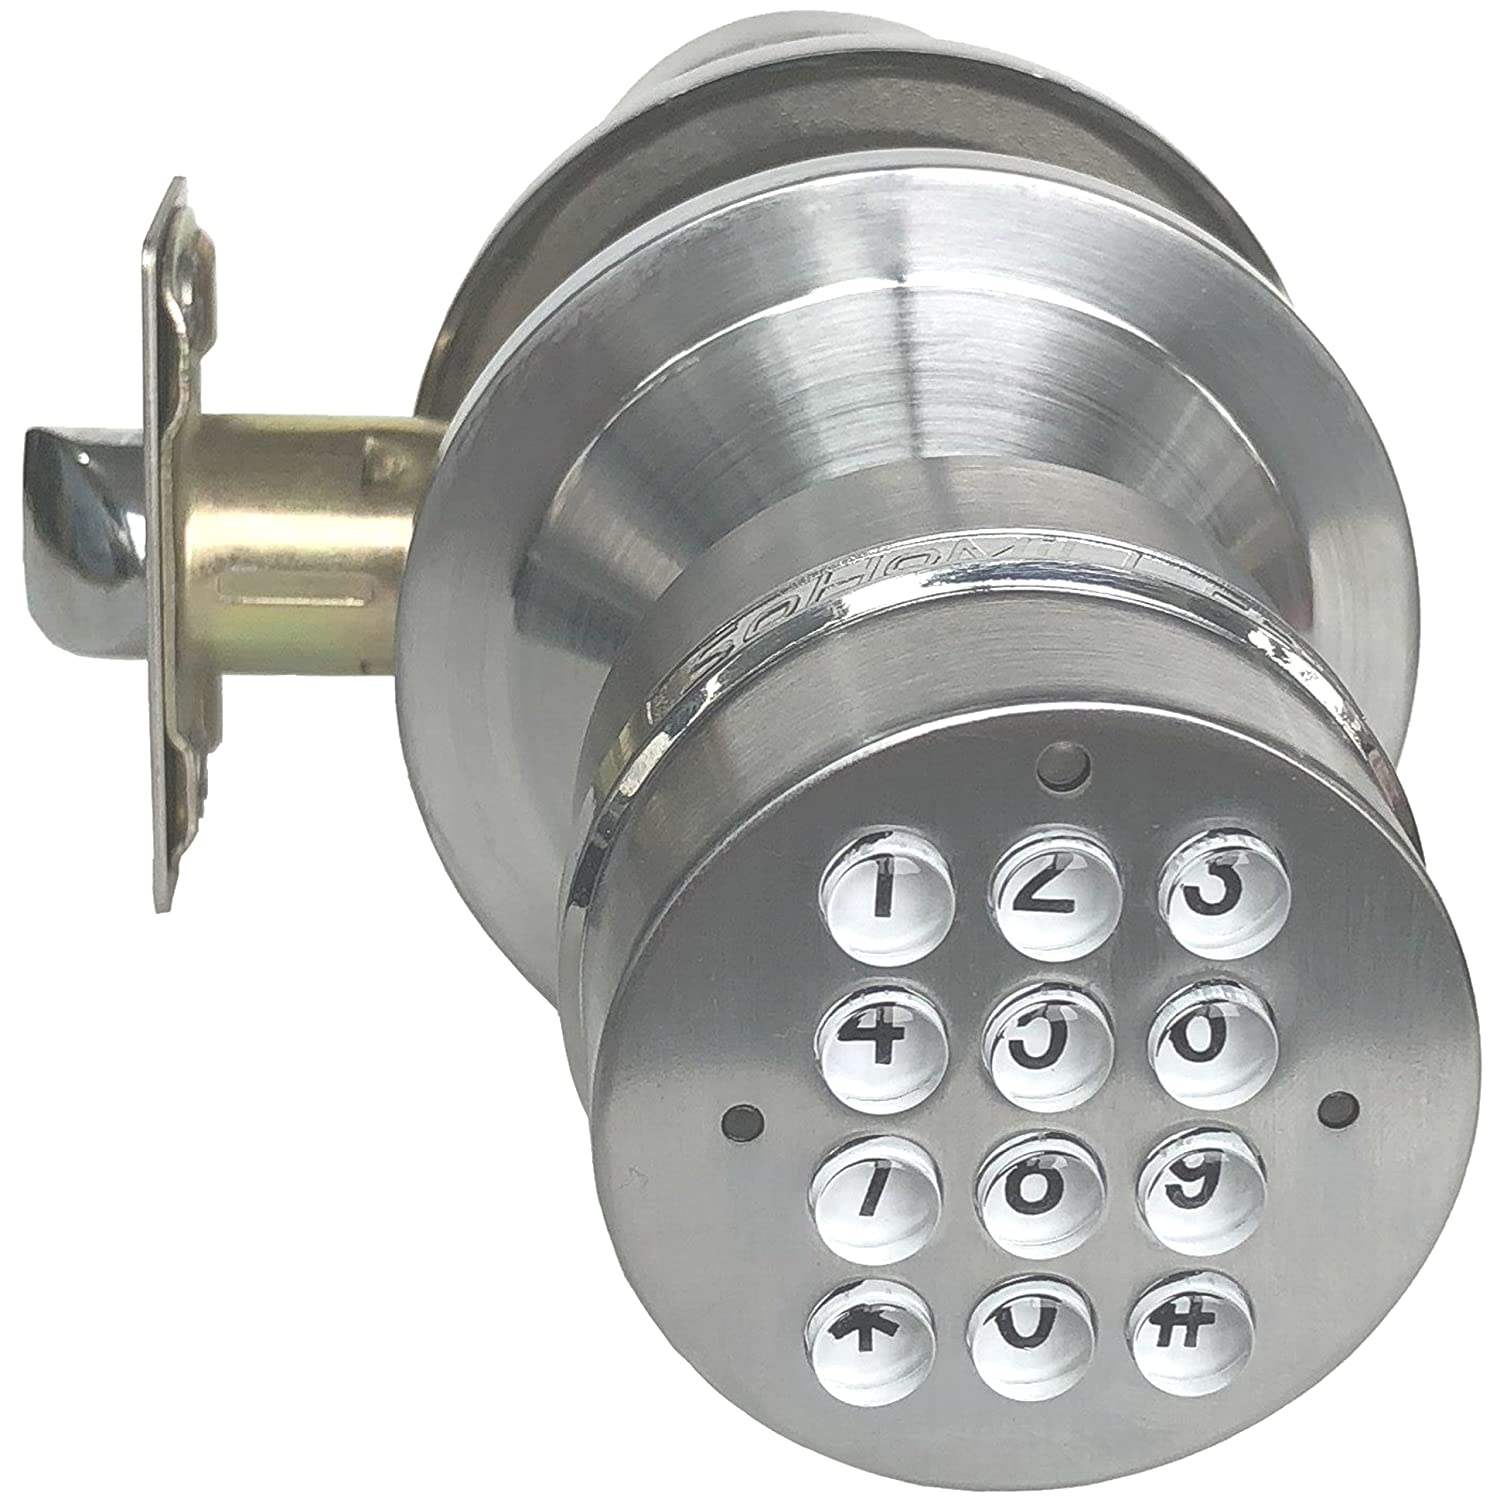 SoHoMiLL Electronic Door Knob Spring Latch Lock Not Deadbolt Not Phone Connected , Single Front keypad YL 99